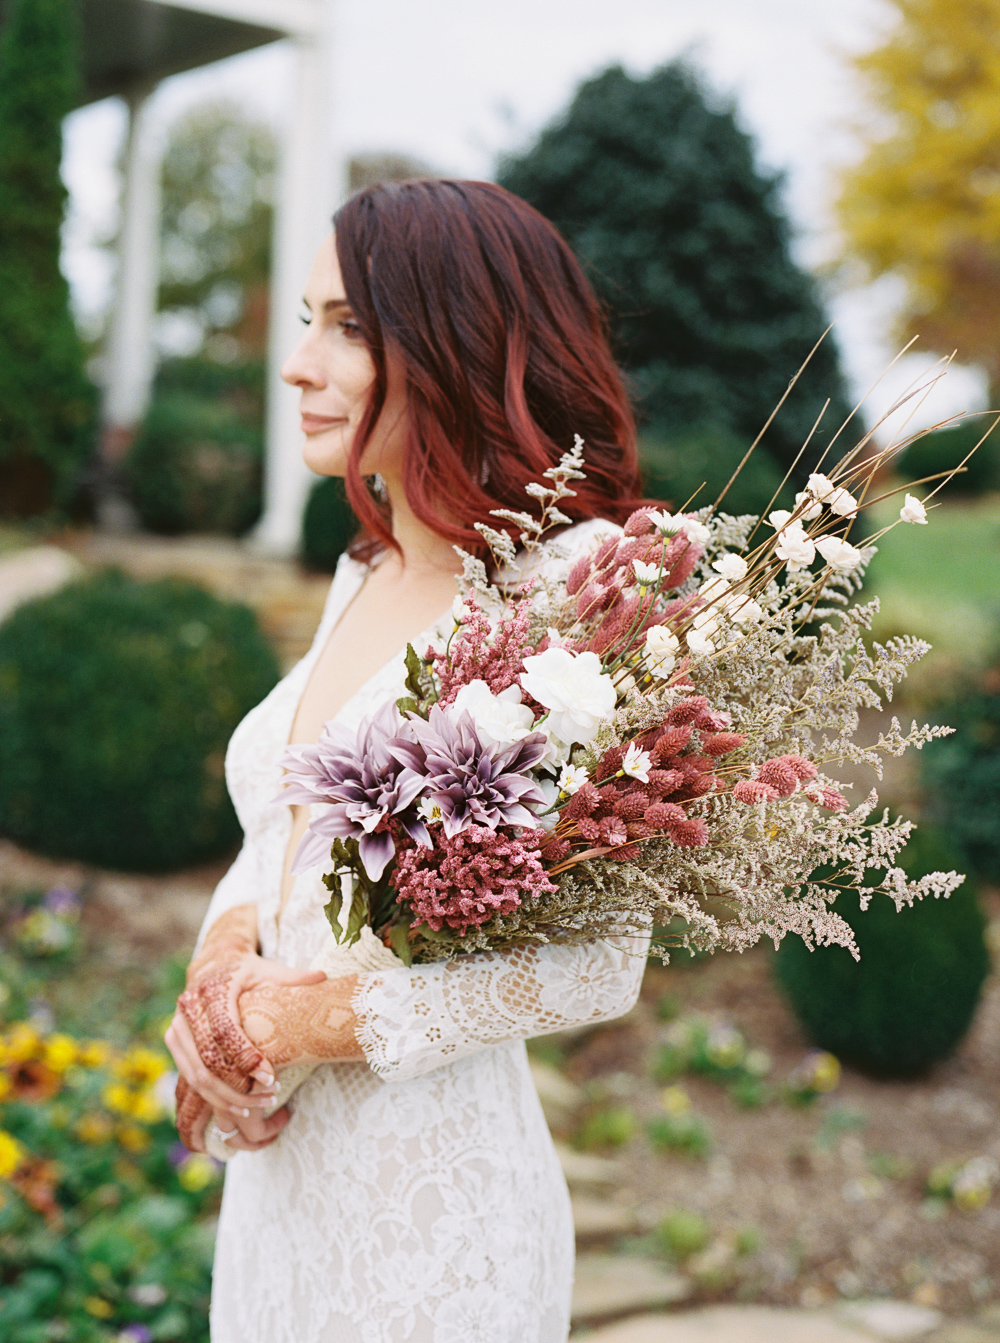 red-hair-bride-on-wedding-day-color-ideas